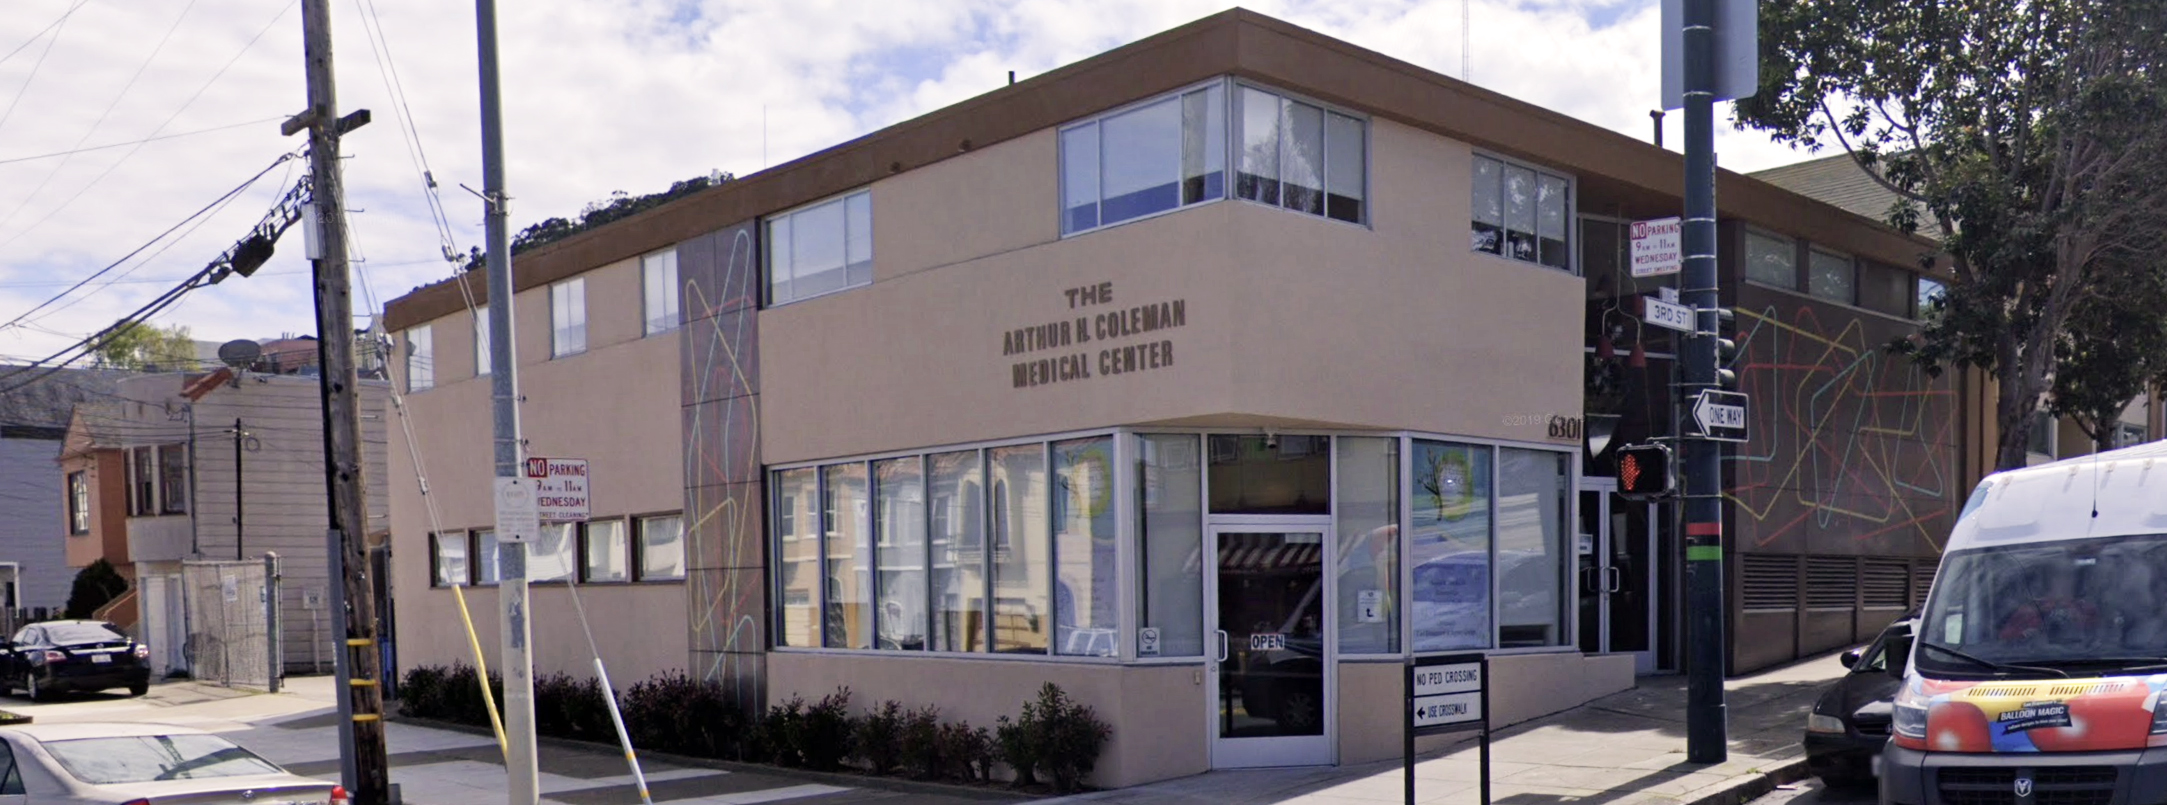 Marin Health Center, San Francisco